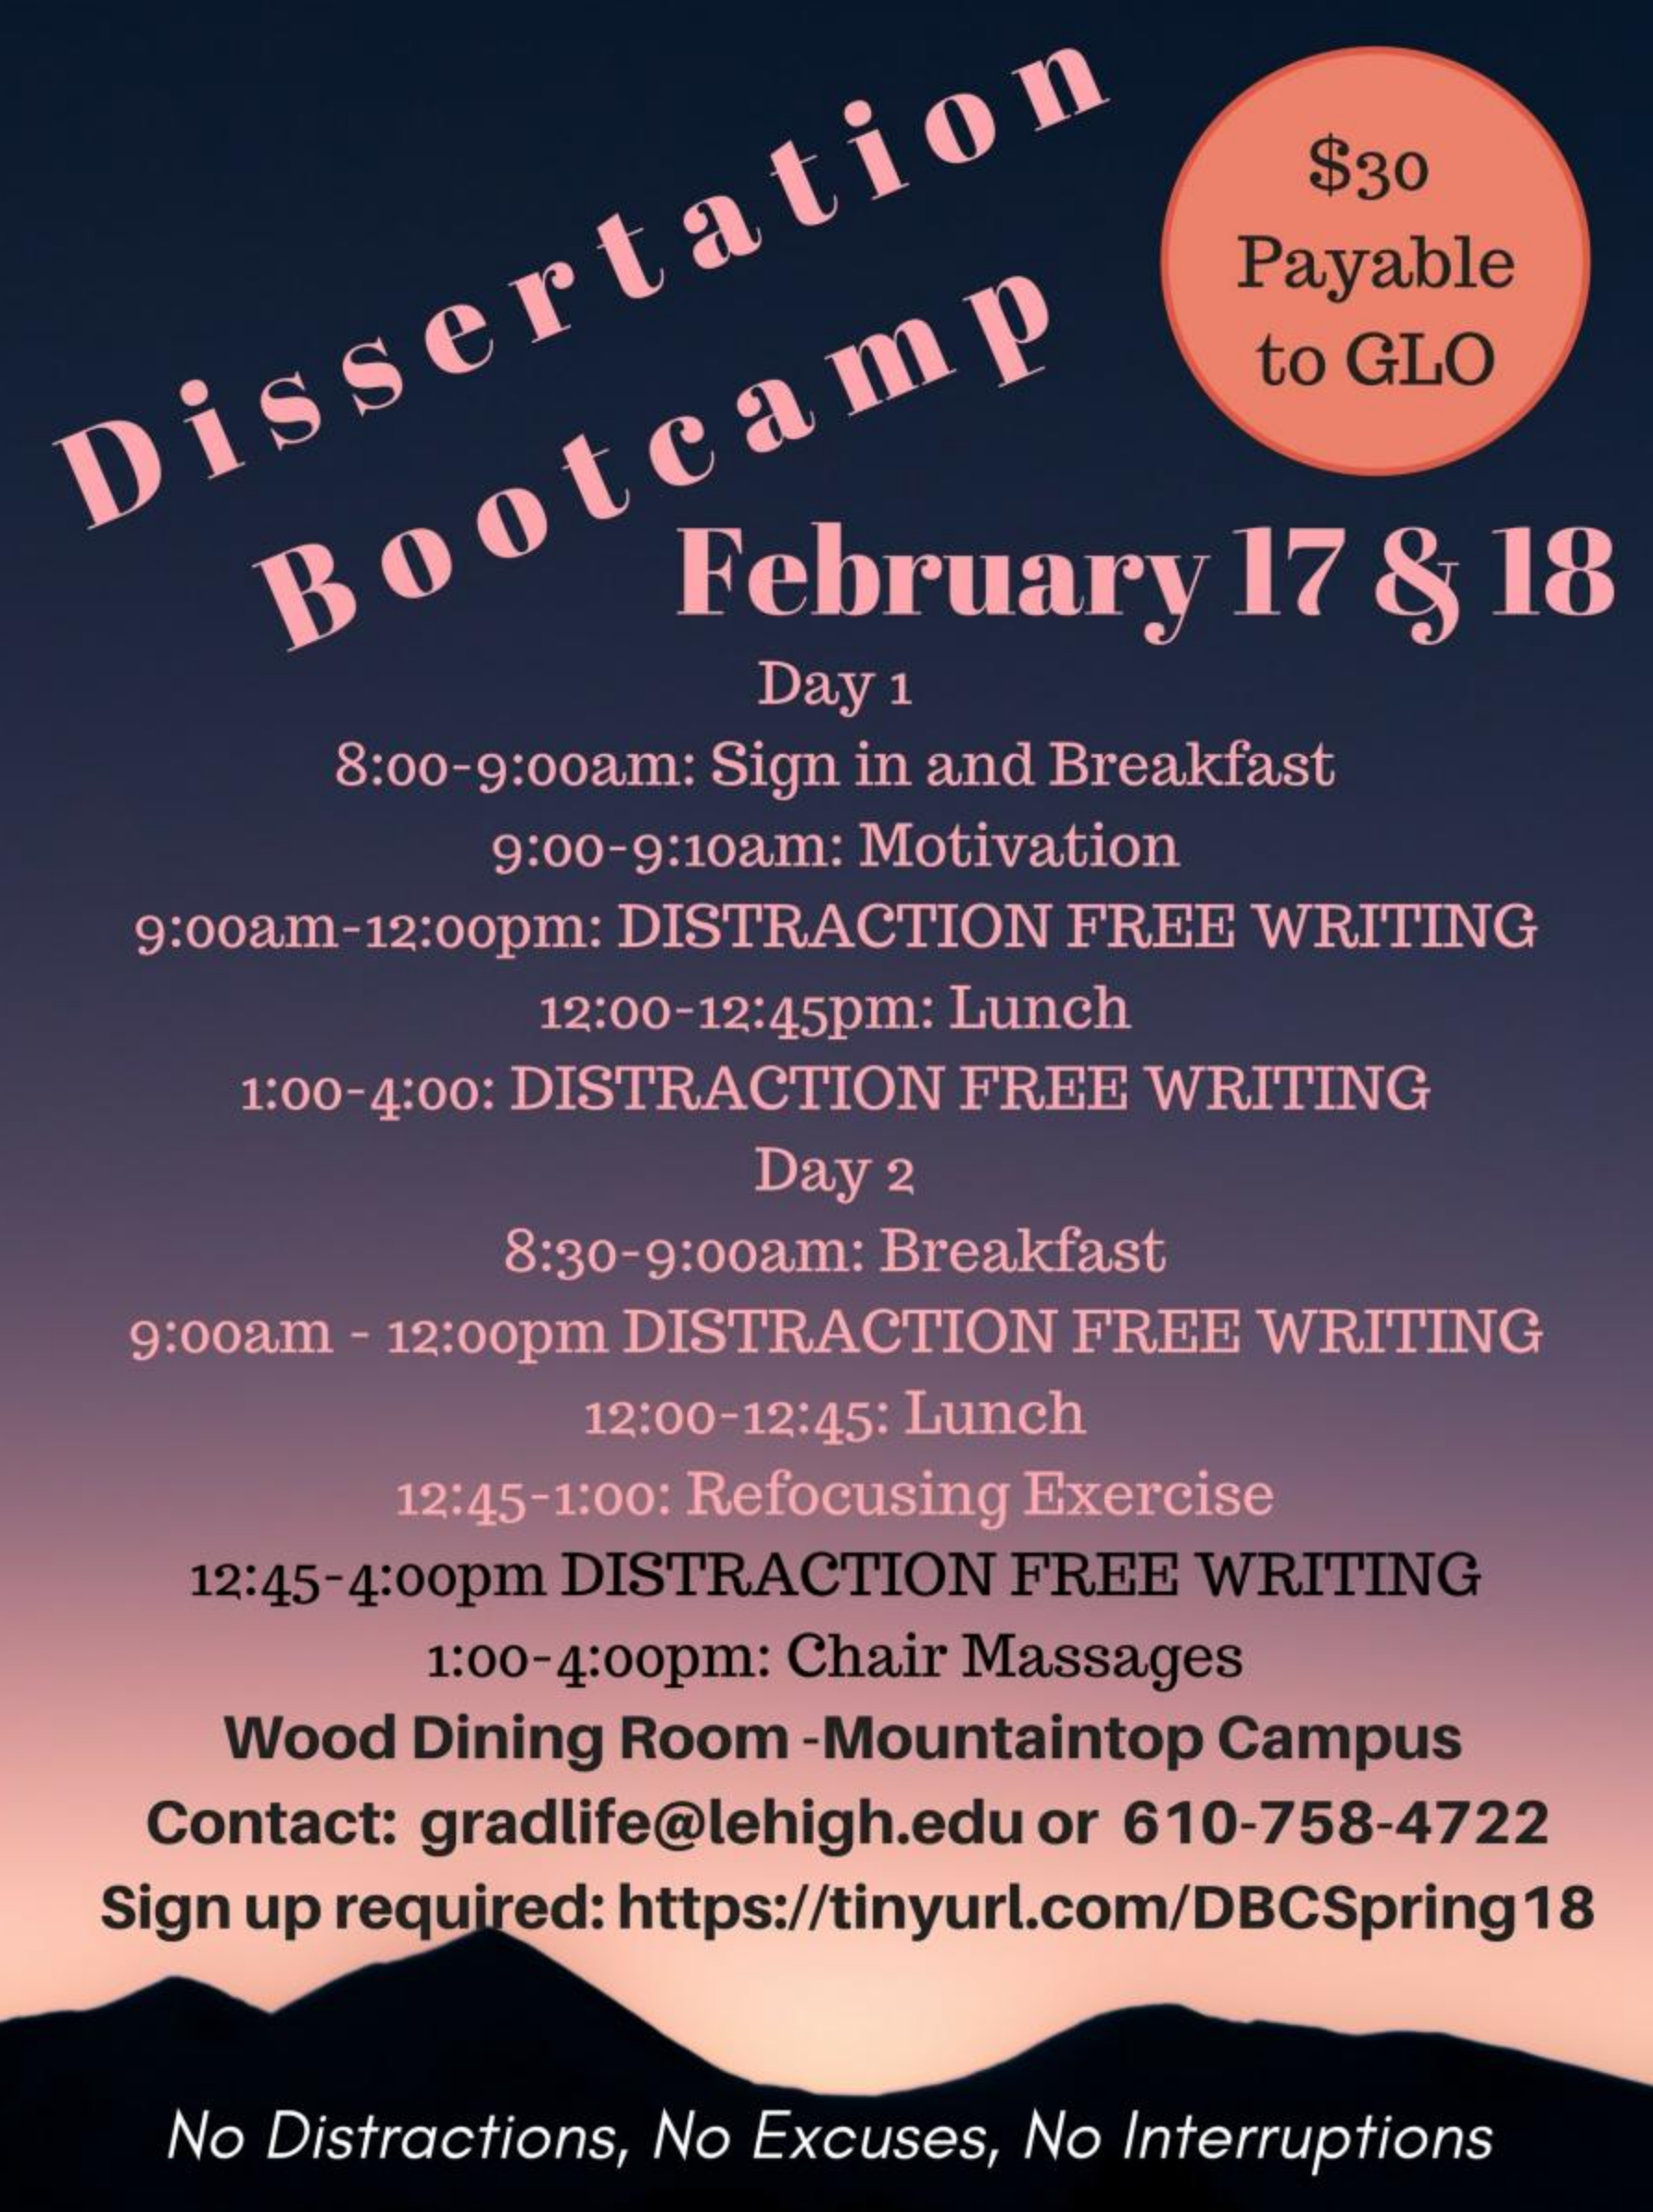 lehigh university dissertation boot camp Dissertation boot camp guelph - modify the way you deal with your task with our professional service proofreading and proofediting services from best professionals professional writers engaged in the service will fulfil your assignment within the deadline.